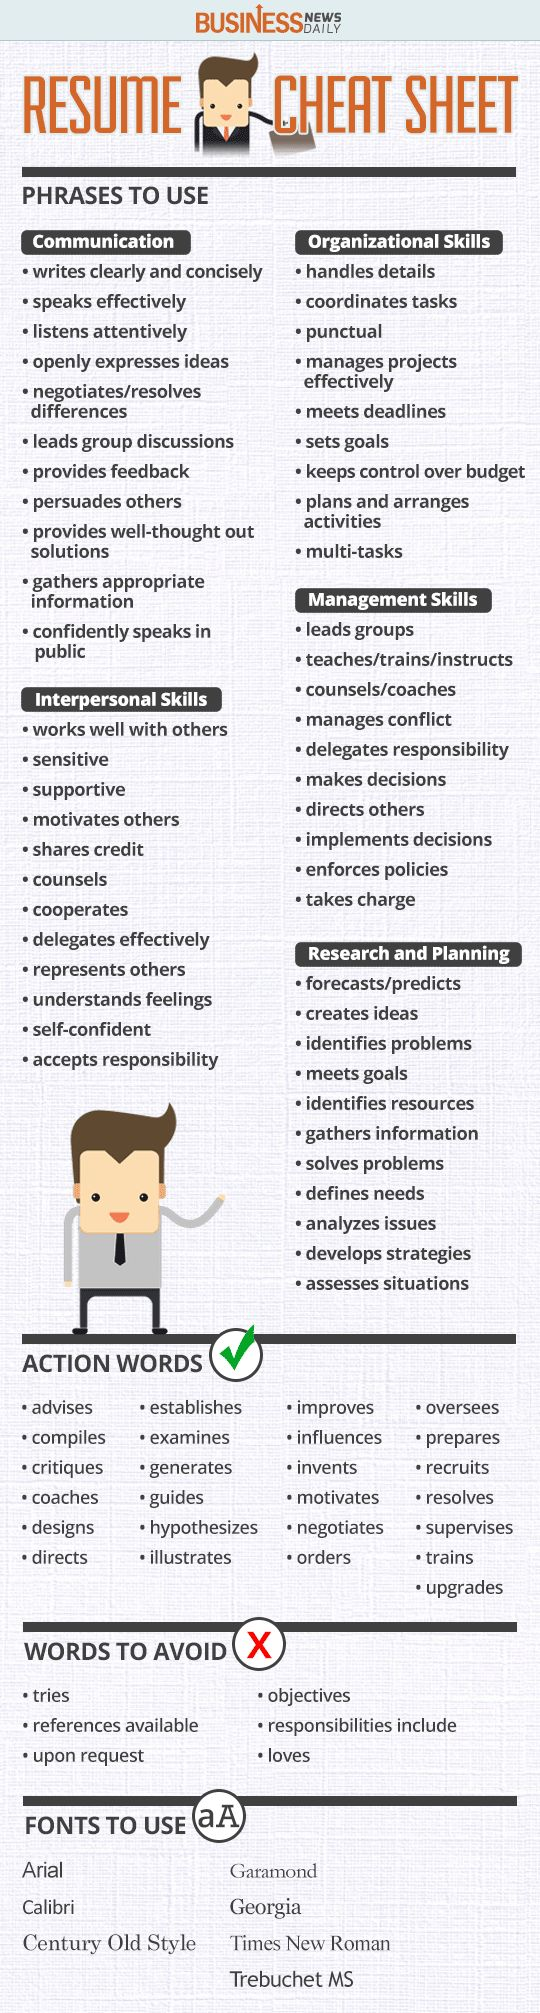 Opposenewapstandardsus  Gorgeous  Ideas About Resume On Pinterest  Cv Format Resume Cv And  With Licious Resume Cheat Sheet Infographic Andrews Almost Done With A Complete Unit On Employment Which With Lovely Cover Letter Resume Also Objectives For Resume In Addition Resume Template Download And Microsoft Resume Templates As Well As Free Resumes Additionally Resume Writers From Pinterestcom With Opposenewapstandardsus  Licious  Ideas About Resume On Pinterest  Cv Format Resume Cv And  With Lovely Resume Cheat Sheet Infographic Andrews Almost Done With A Complete Unit On Employment Which And Gorgeous Cover Letter Resume Also Objectives For Resume In Addition Resume Template Download From Pinterestcom